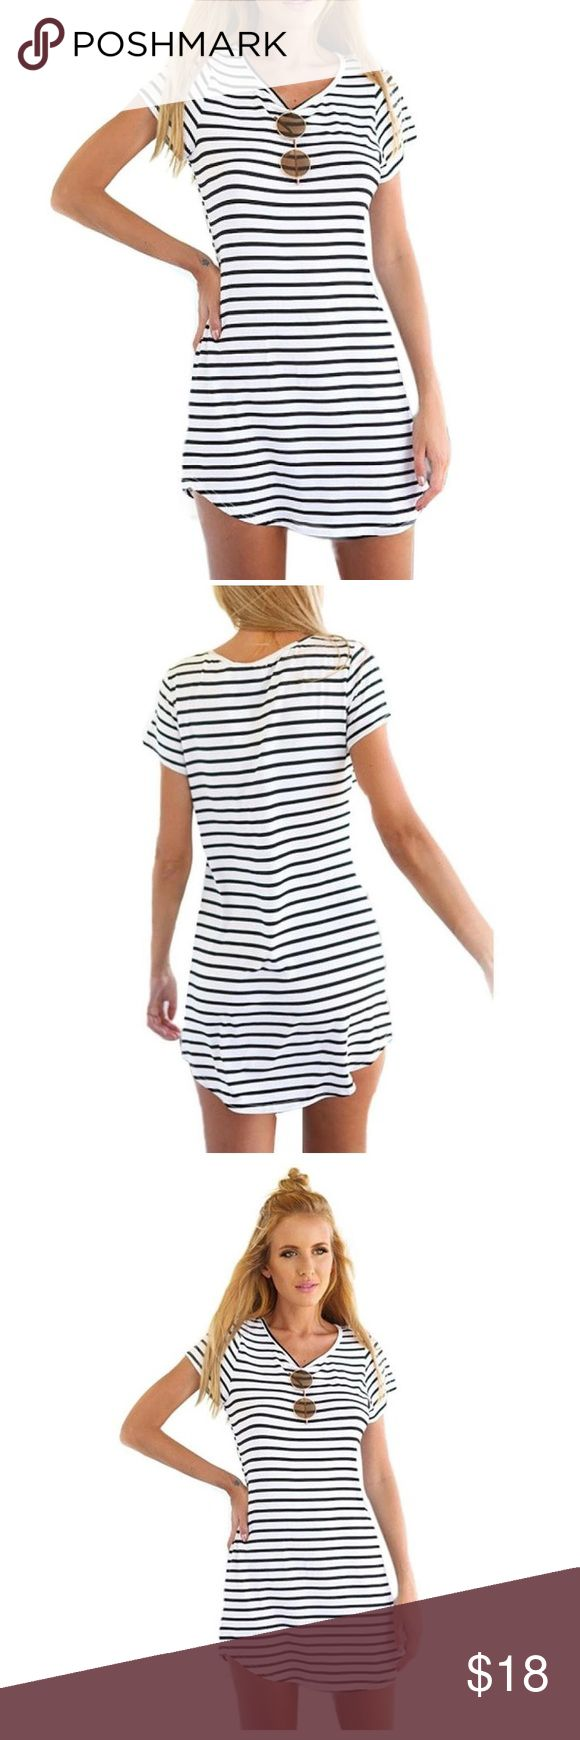 Striped T Shirt Dress New T Shirt dress. White and black striped. Size small. Feel free to ask any additional questions.    please make offers through offer button  bundle for a 20% off discount   smoke & pet free home   sorry no trades Dresses Mini